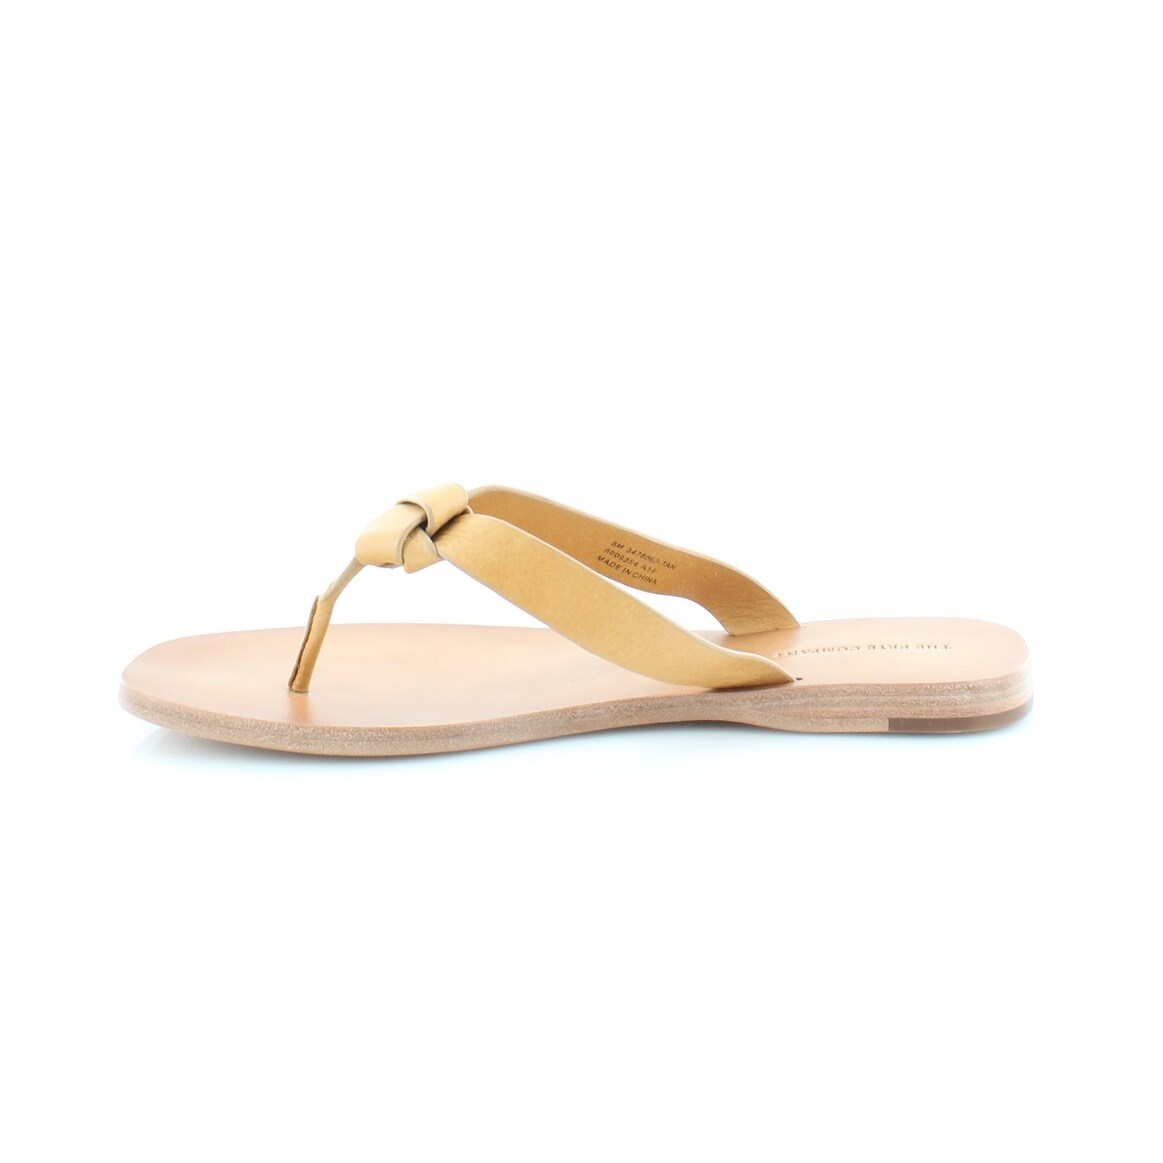 34e7d0e06 Shop Frye Perry Knot Thong Women s Sandals   Flip Flops Tan - Free Shipping  On Orders Over  45 - Overstock - 21286933